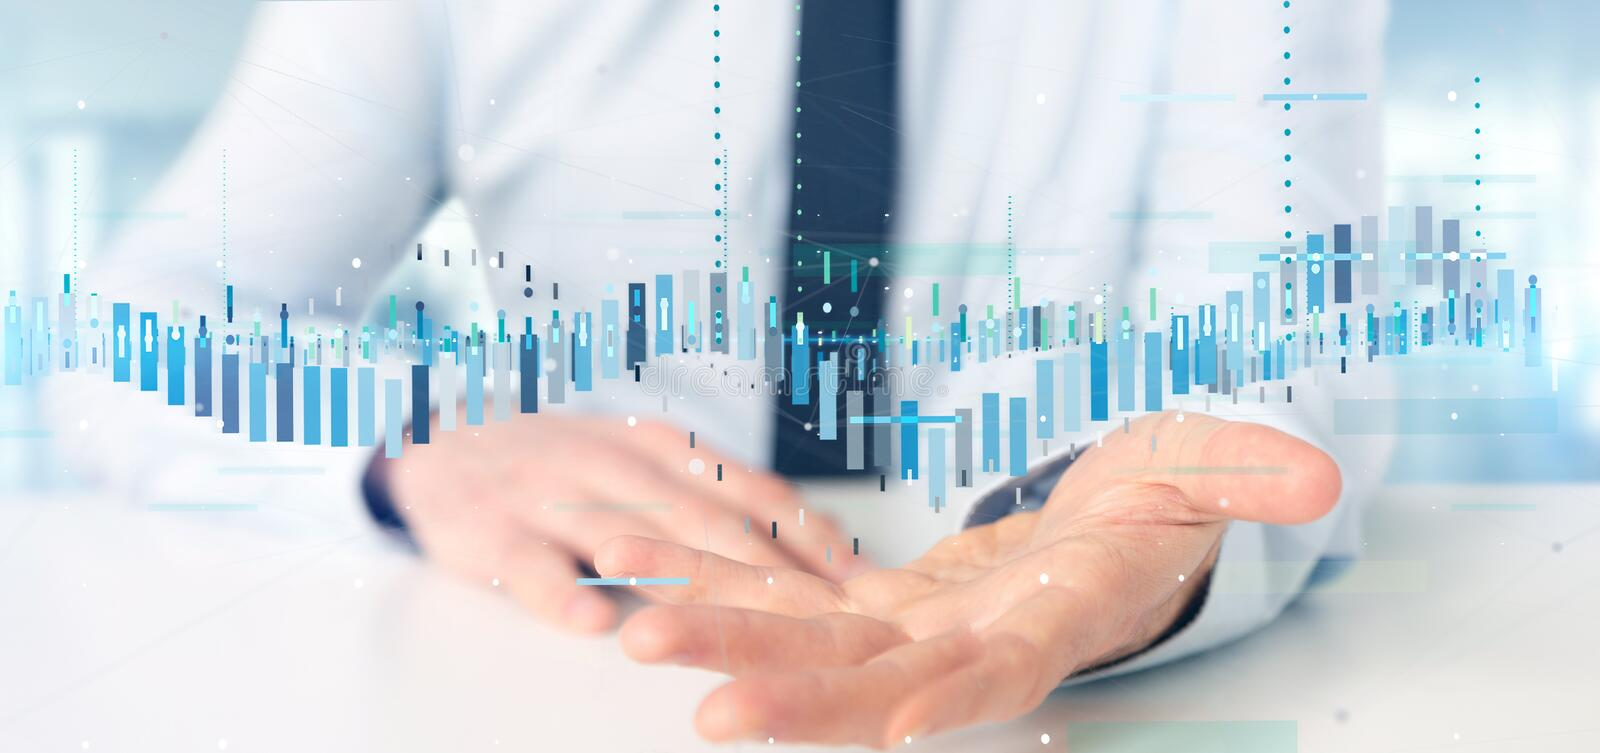 Businessman holding a Business stock exchange trading data information stock photography